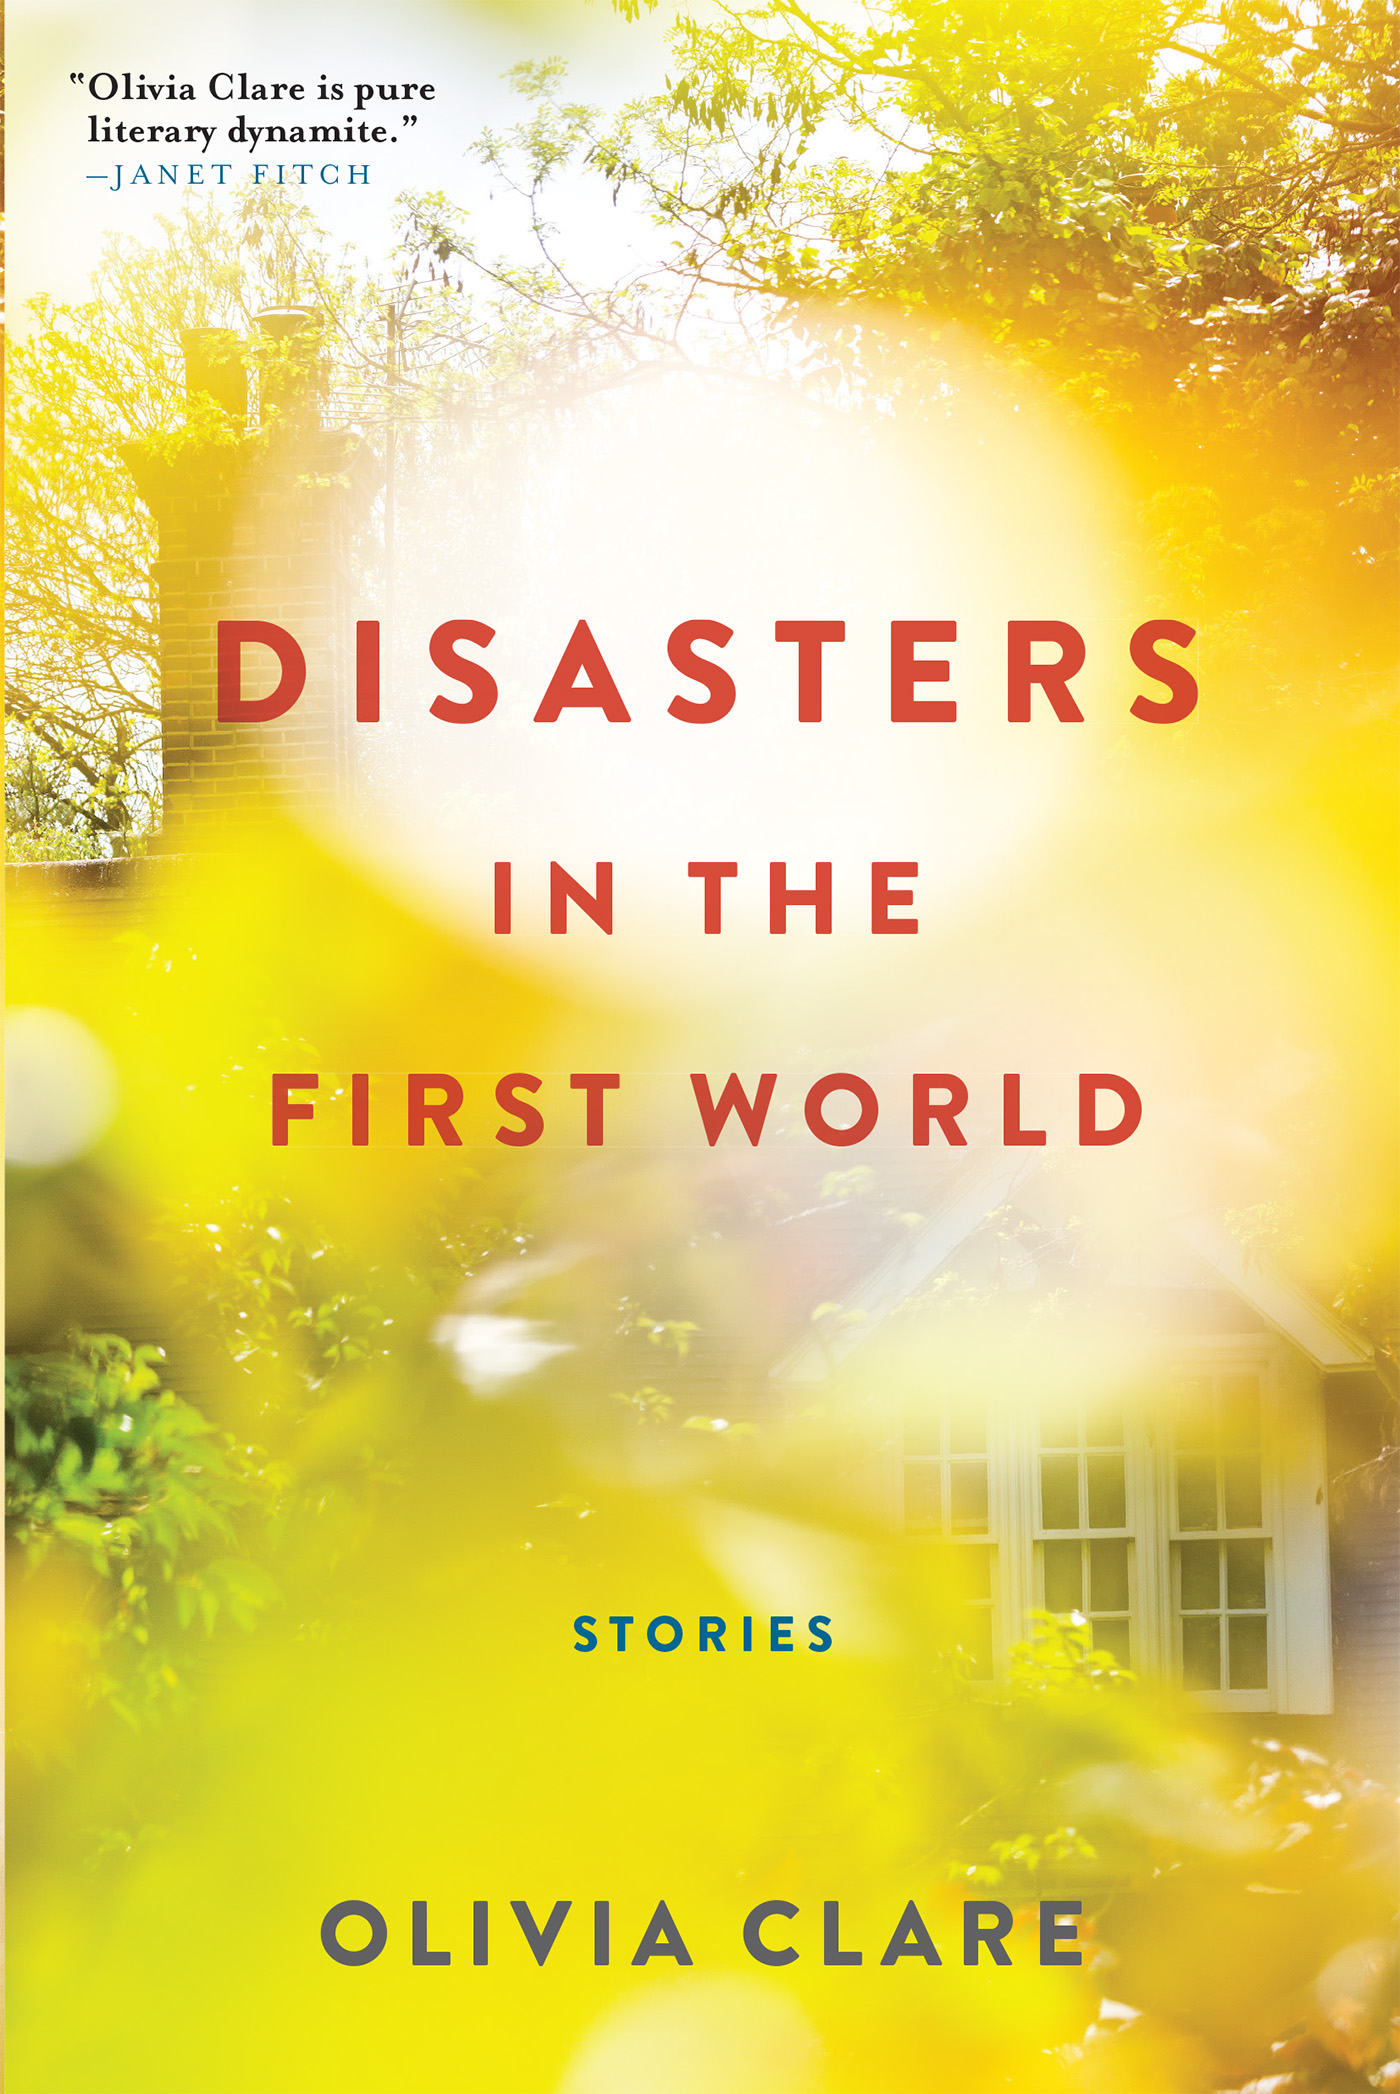 Disasters in the First World by Olivia Clare